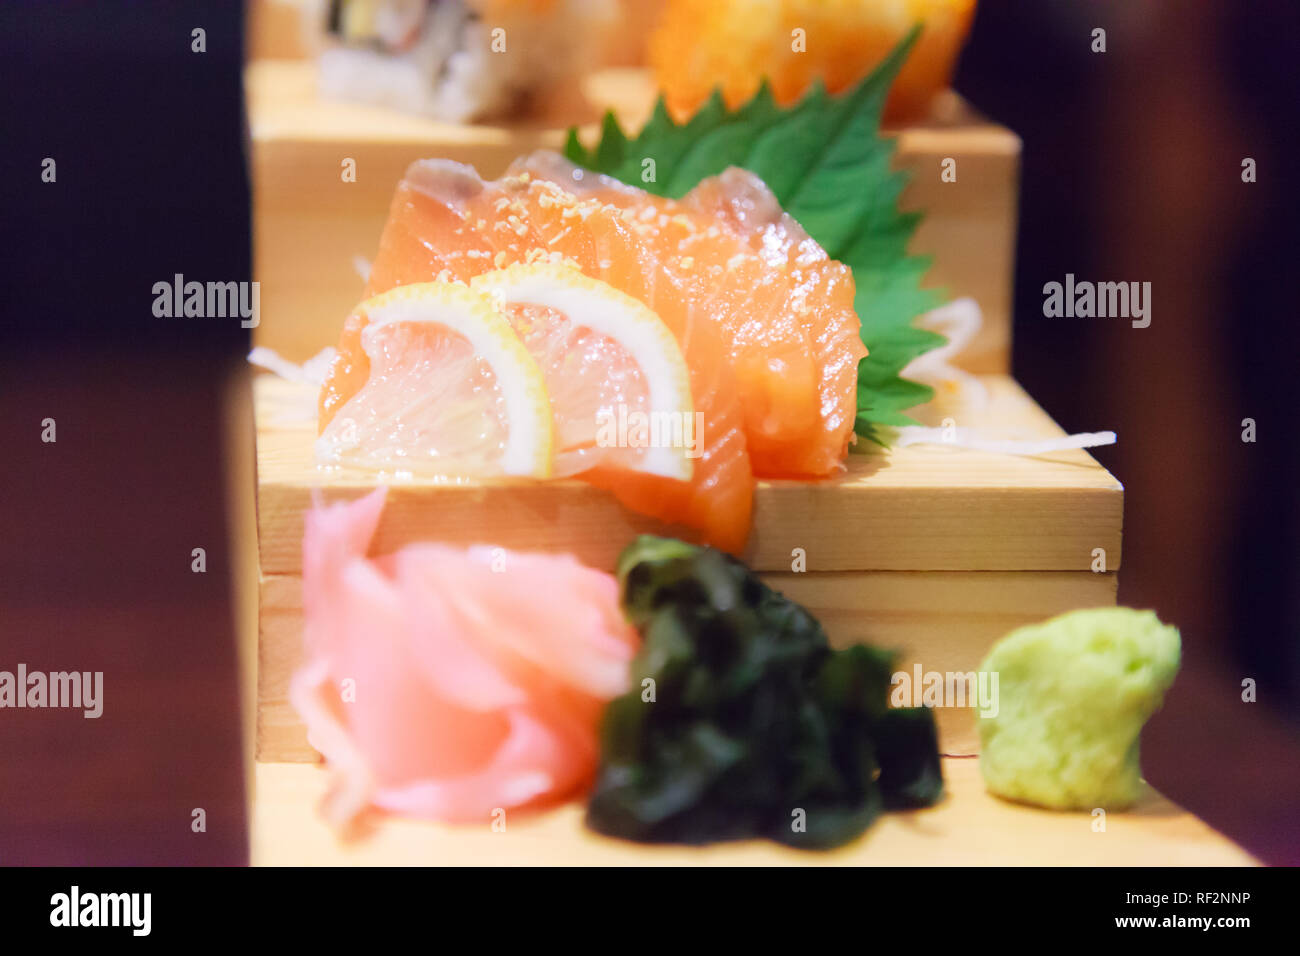 Japanese Fresh Fish Food Dish Menu,  Salmon Sashimi, seaweed, ginger and wasabi decorated on wooden step in traditional Japanese Restaurant. Healthy F Stock Photo